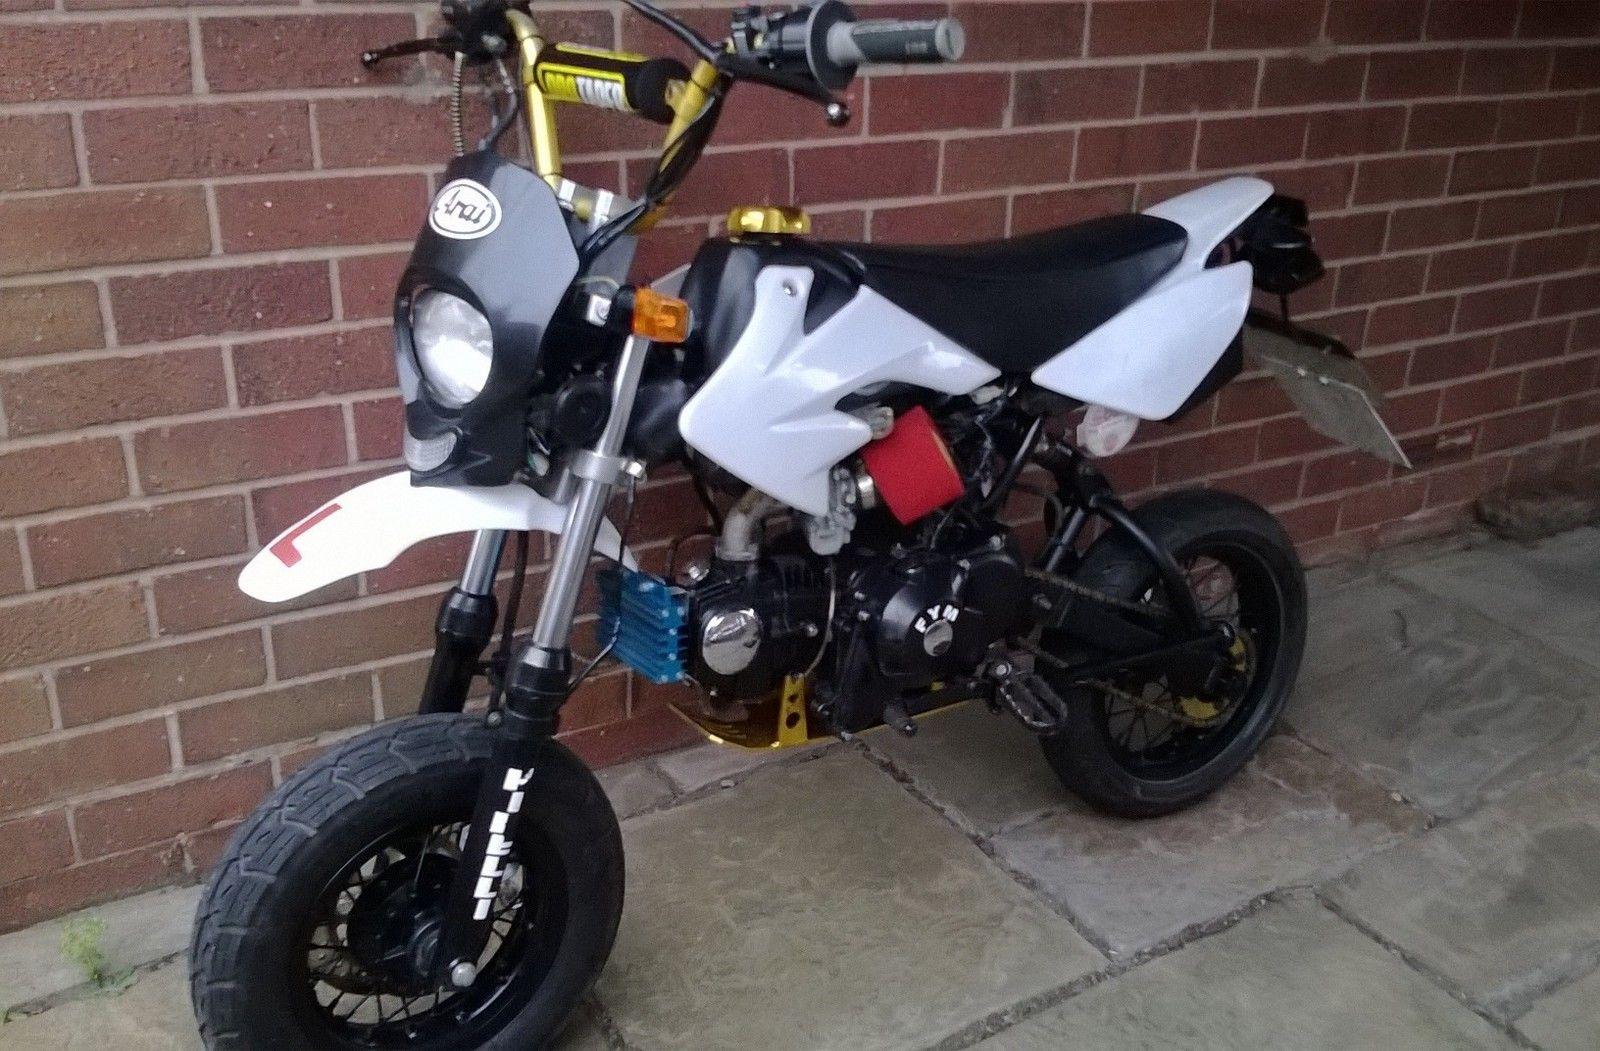 Marvelous Cheap Street Bike 1 Road Legal Pit Bike 110cc Shineray